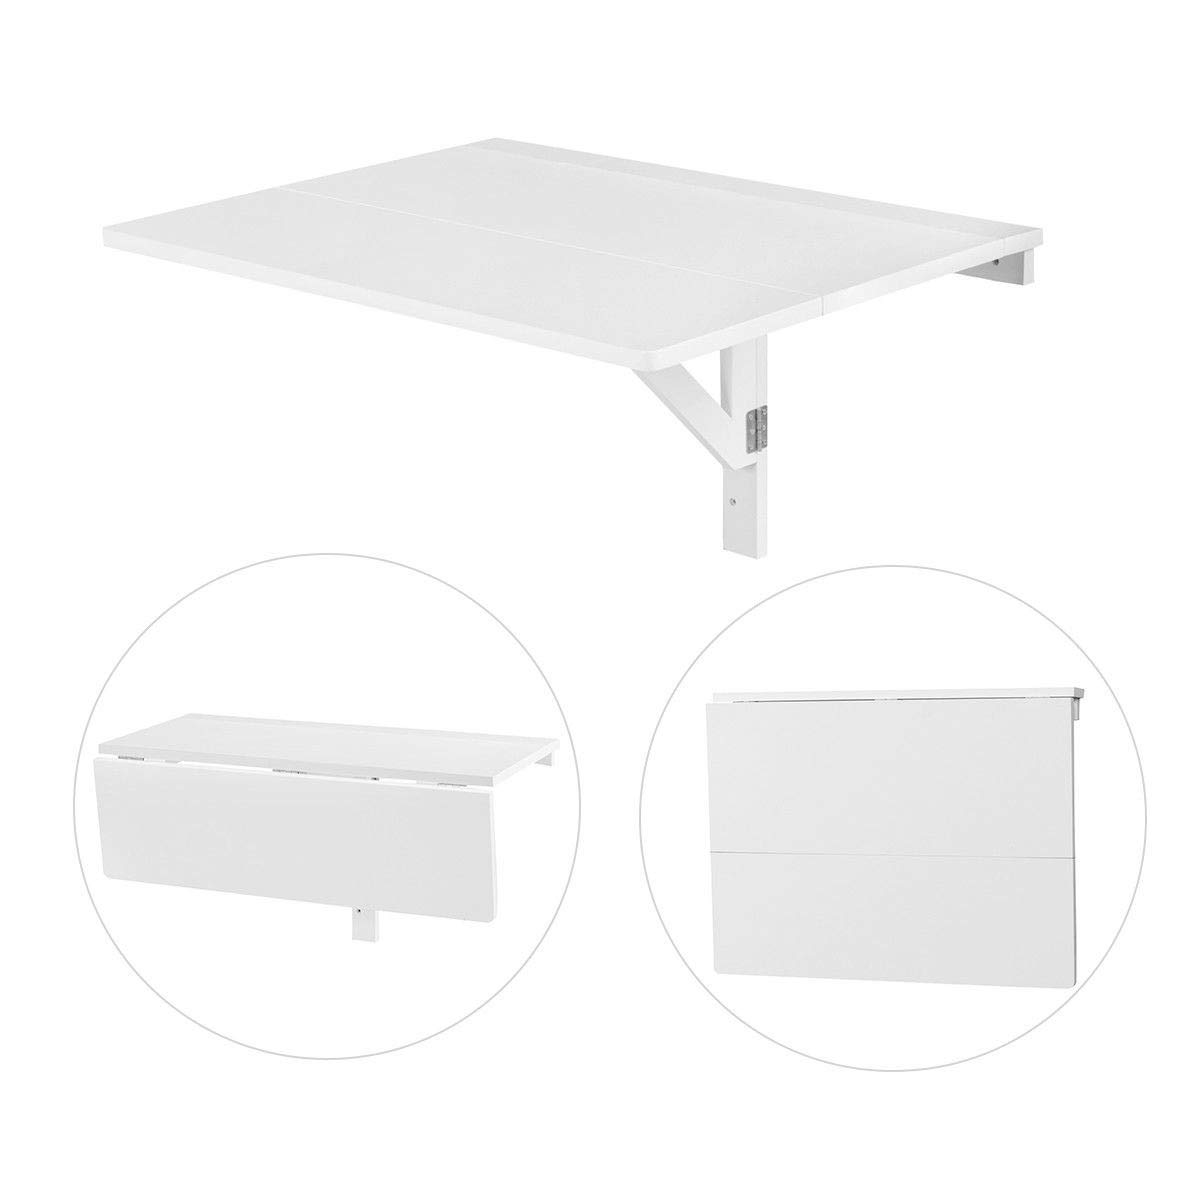 Wall-Mounted Drop-Leaf Table Folding Kitchen Dining Table Desk Simple and Folding by USA_BEST_SELLER